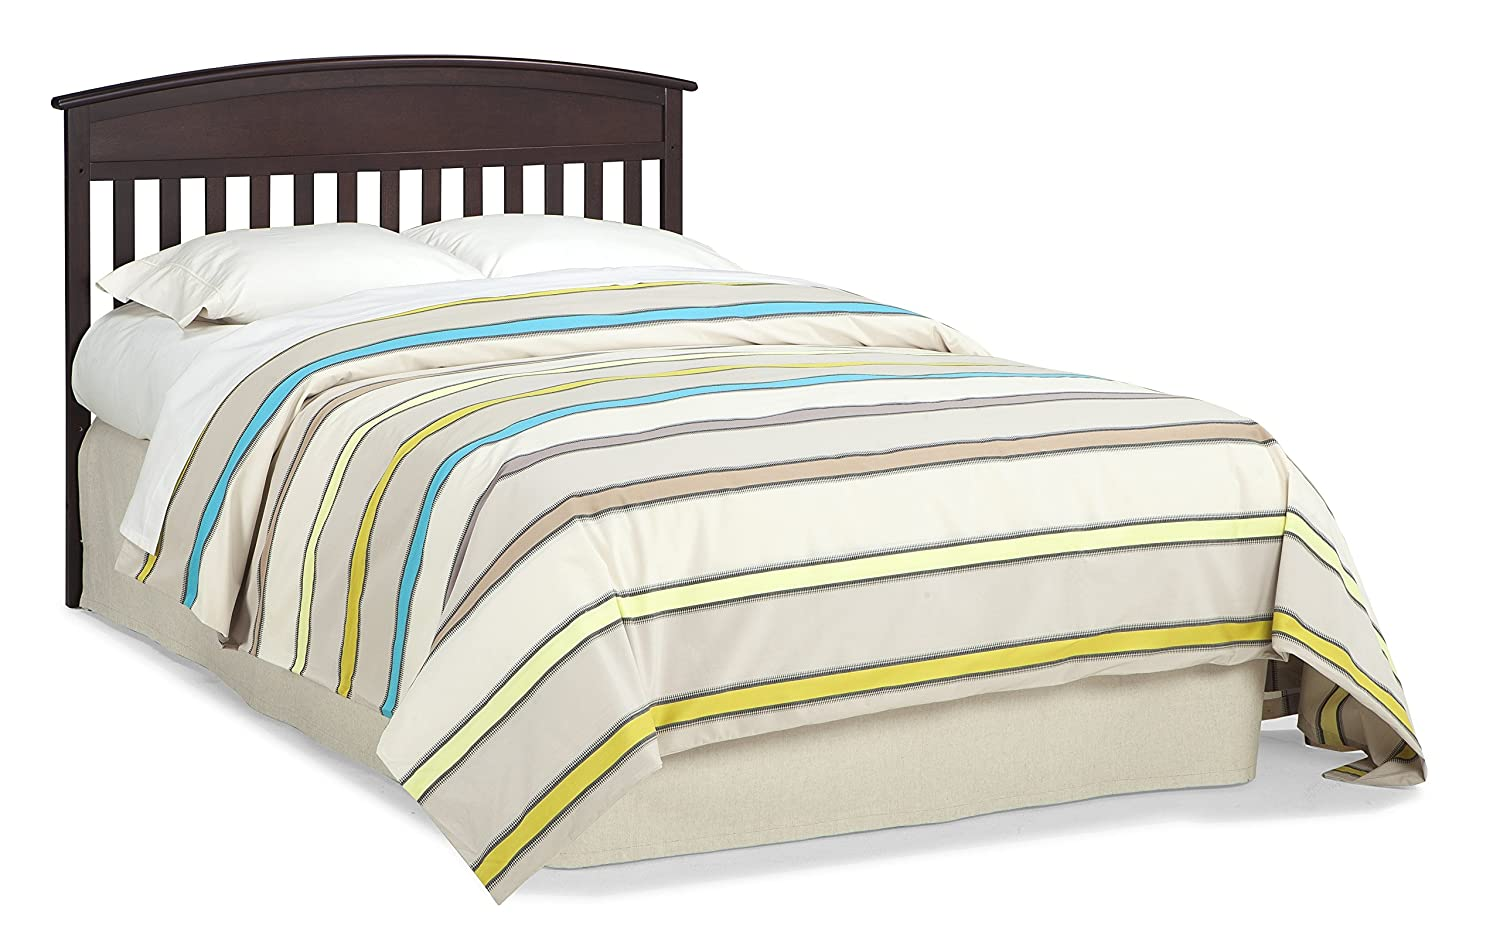 Whitewash Easily Converts to Toddler Bed Daybed or Full-Size Bed with Headboard Graco Benton 4-in-1 Convertible Crib 3-Position Adjustable Mattress Support Base